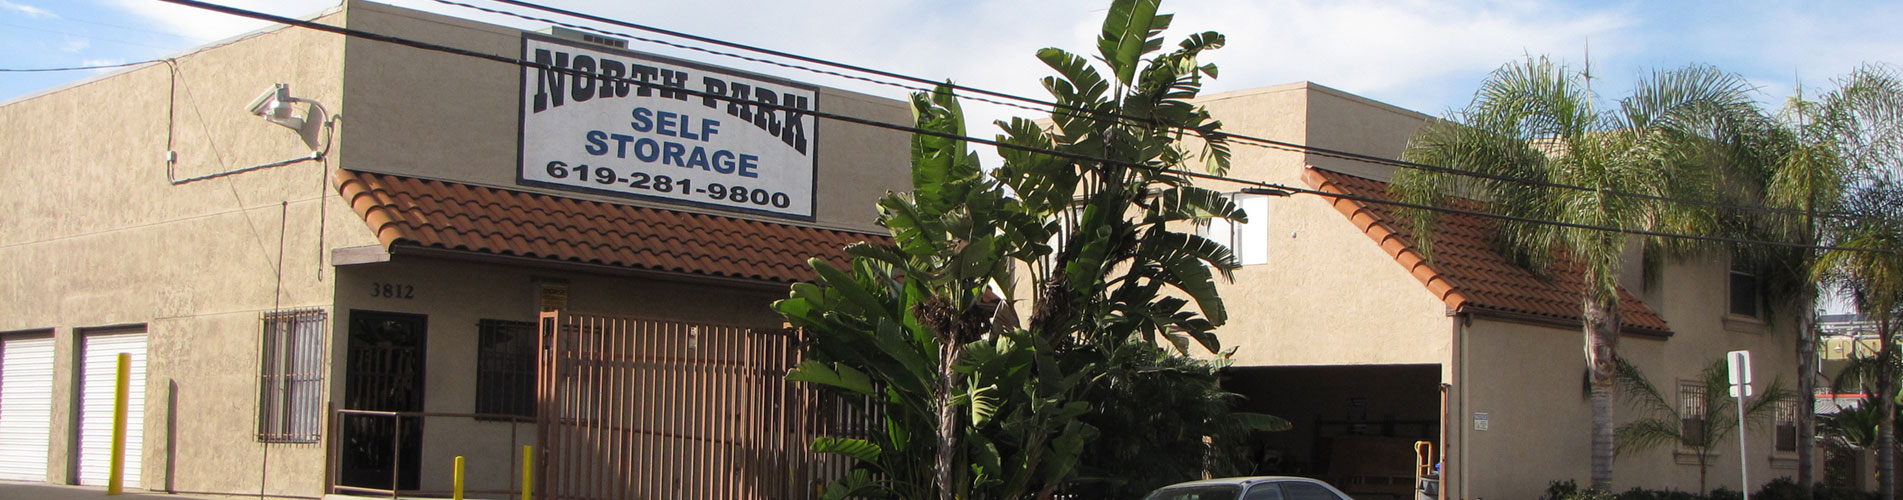 North Park Self Storage | Self Storage in San Diego